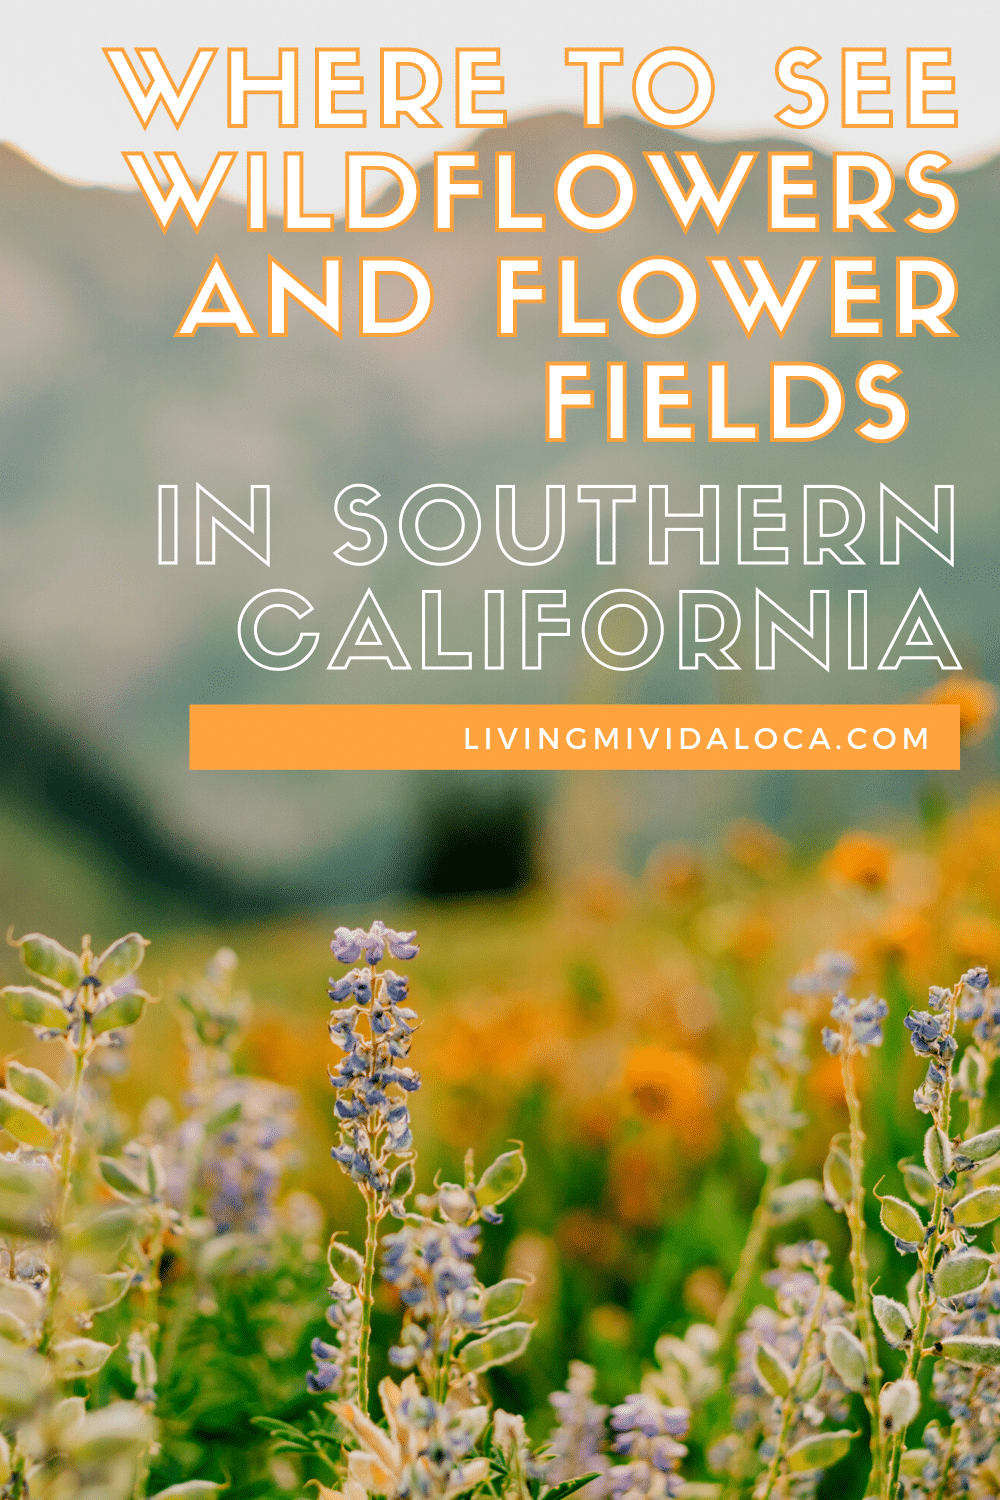 Where to see wildflowers and flower fields in Southern California - livingmividaloca.com